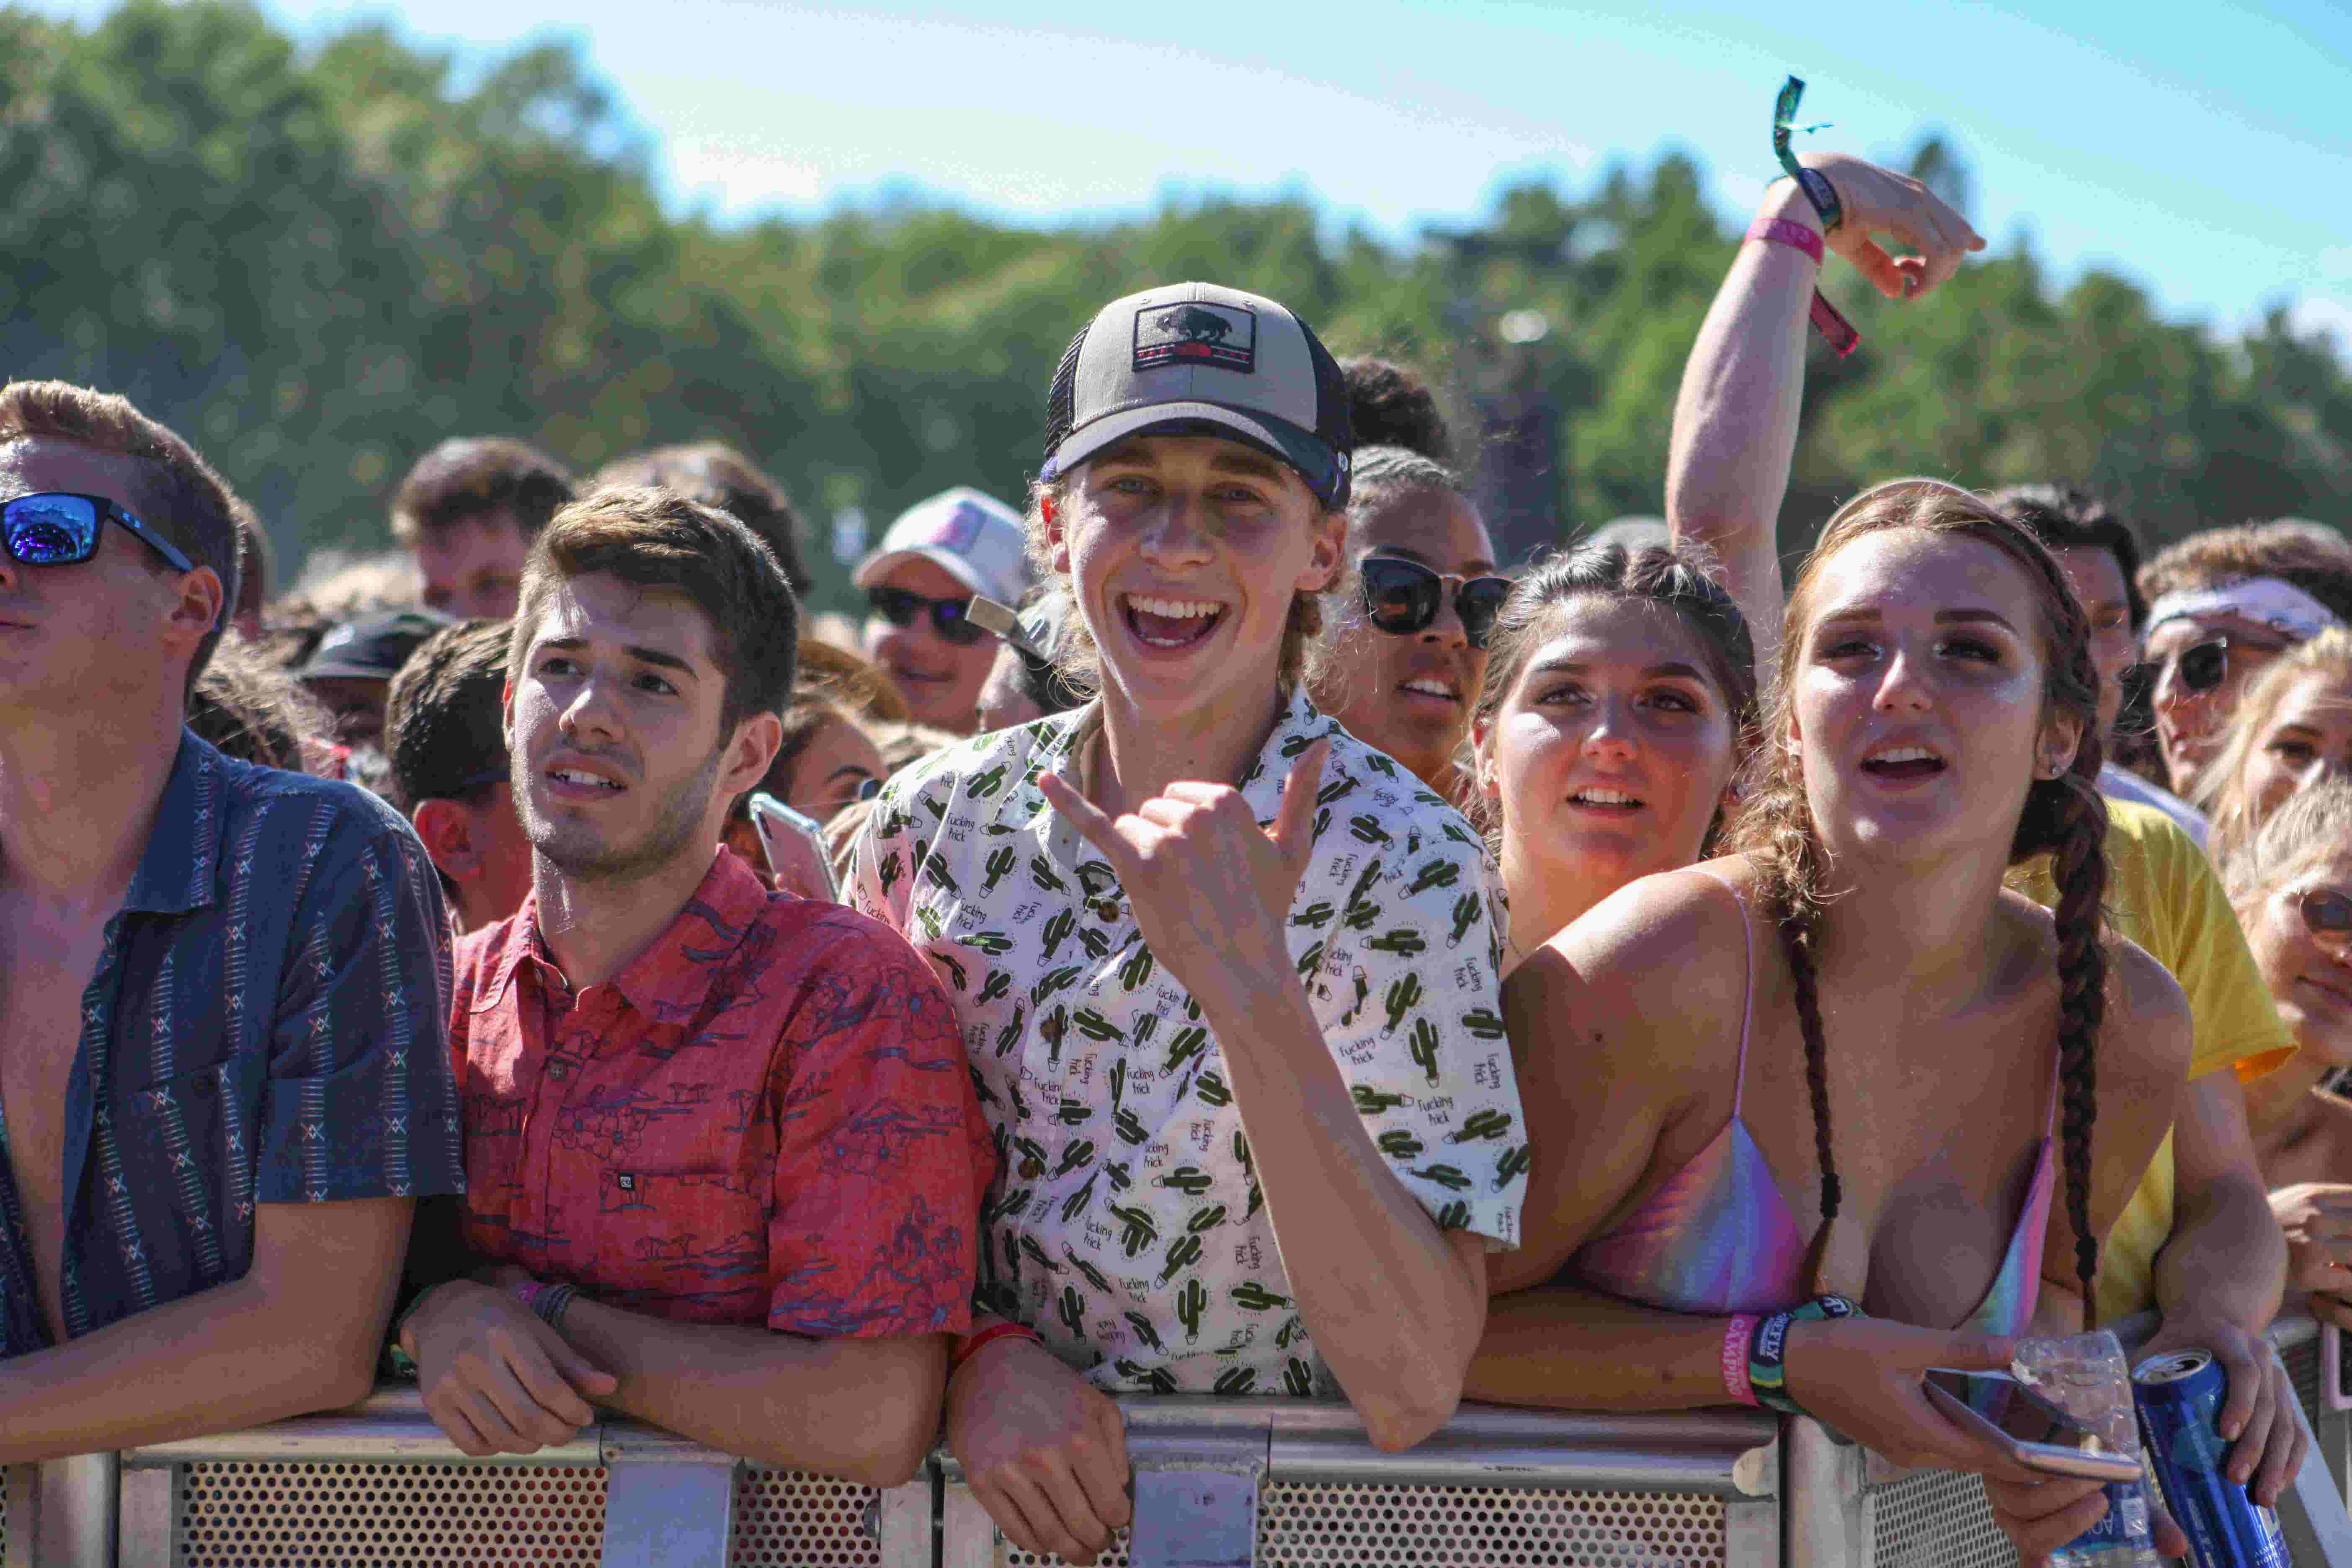 Firefly 2019: He decided 2 years ago he'd ask to marry her here. This year, he did it.